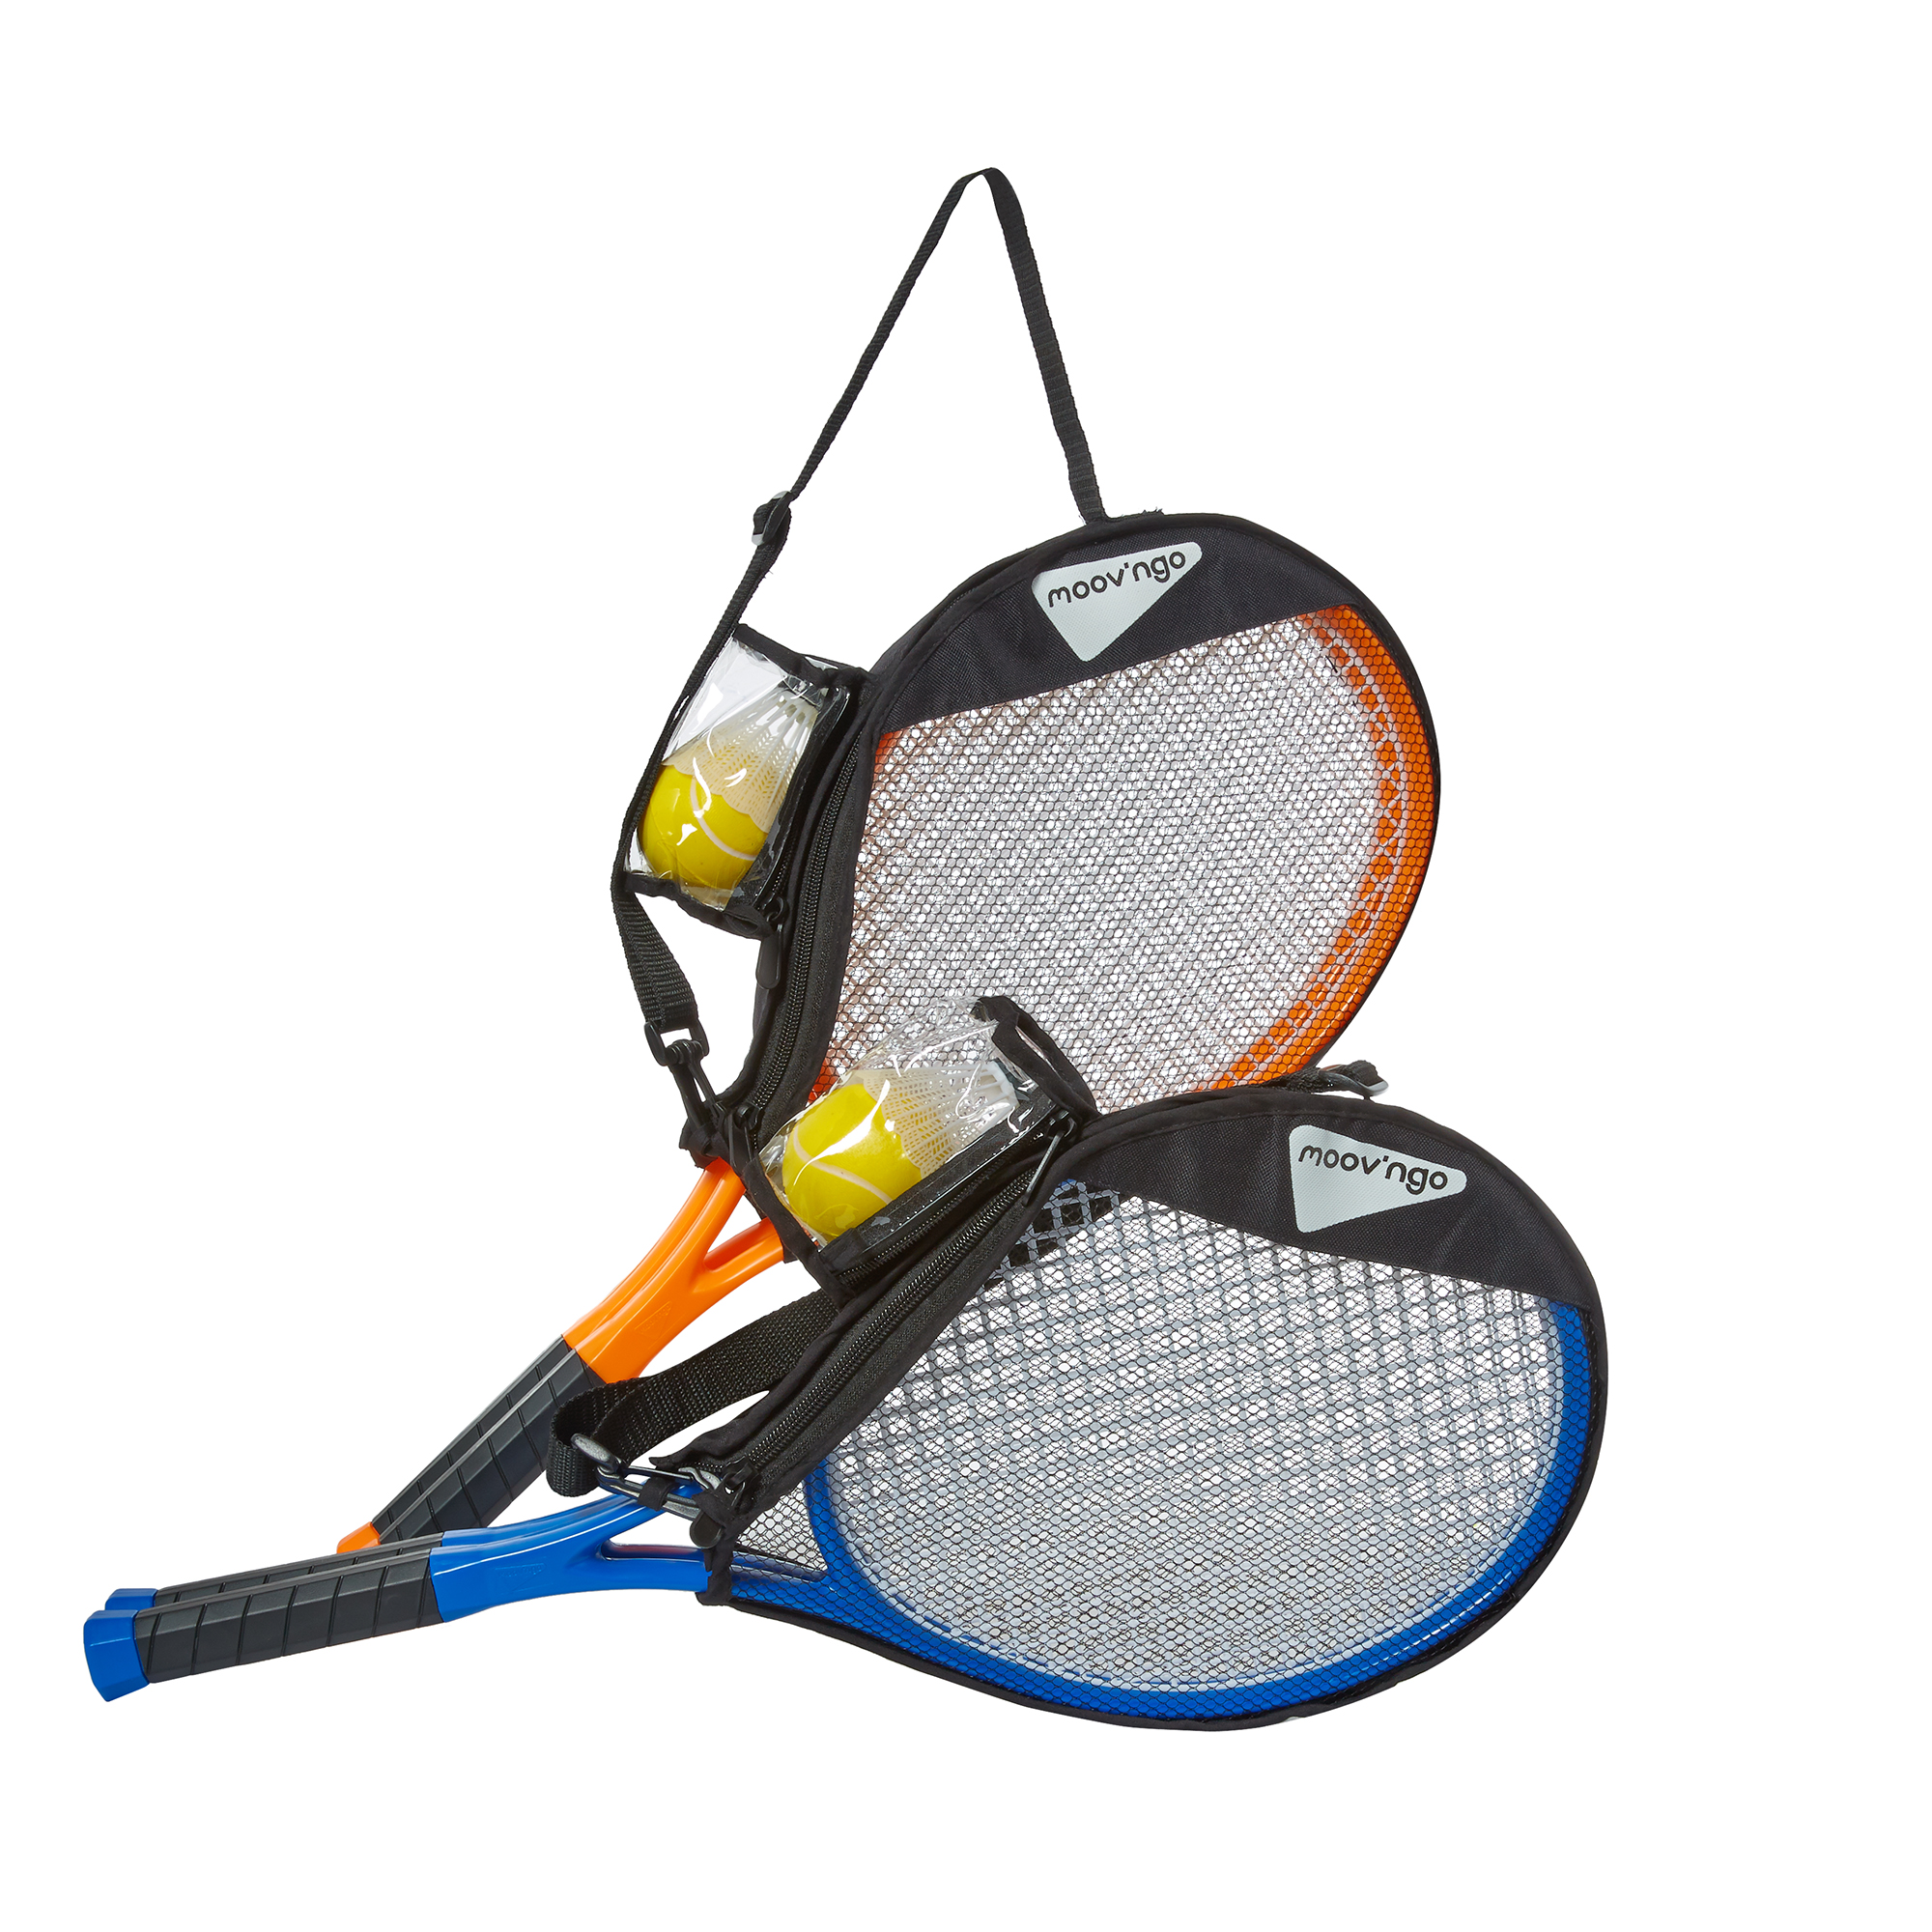 Moov'ngo Tennis/Badminton Set Assortment